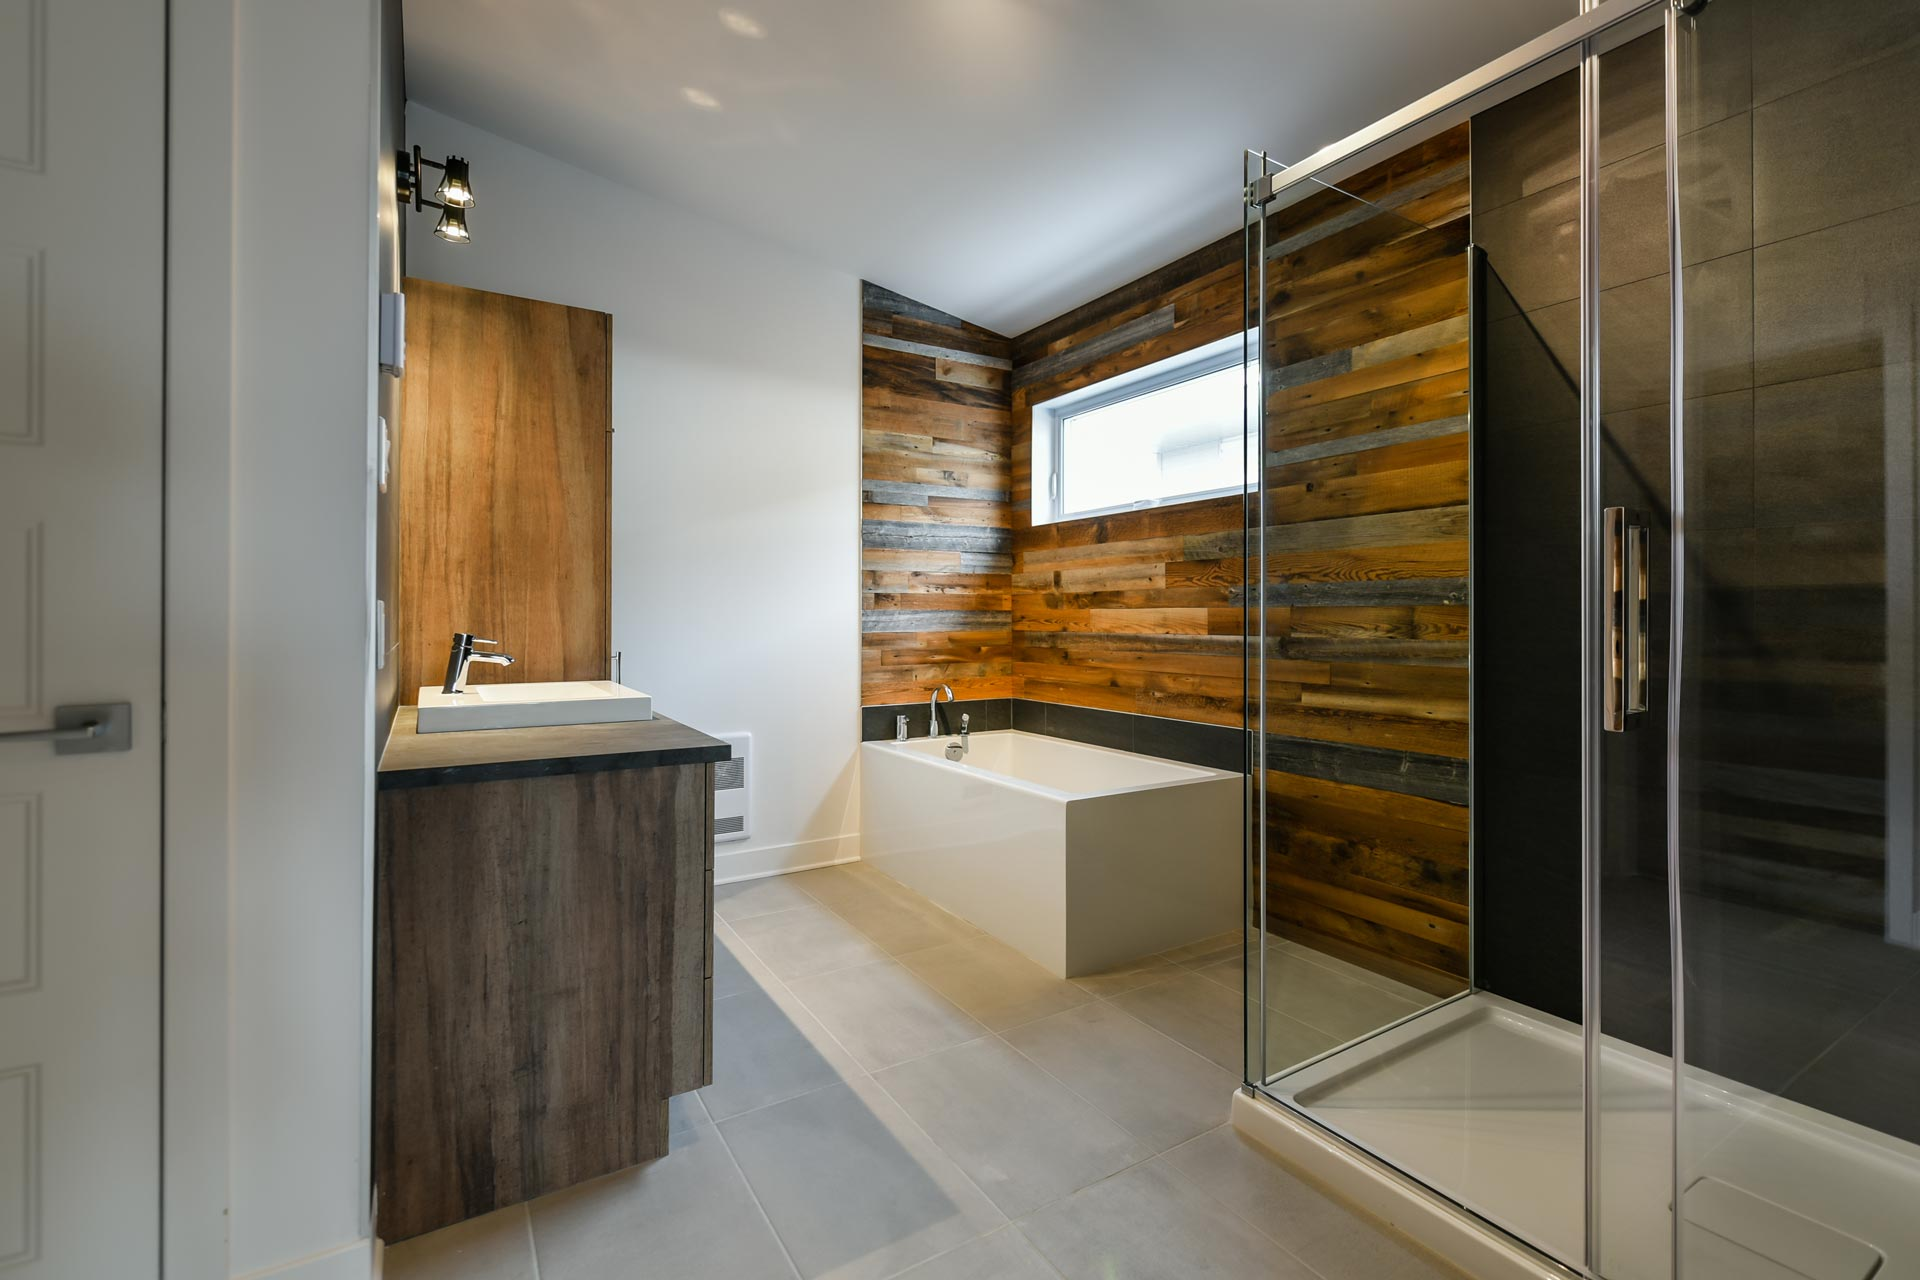 What Are The Latest Trends In Bathrooms?